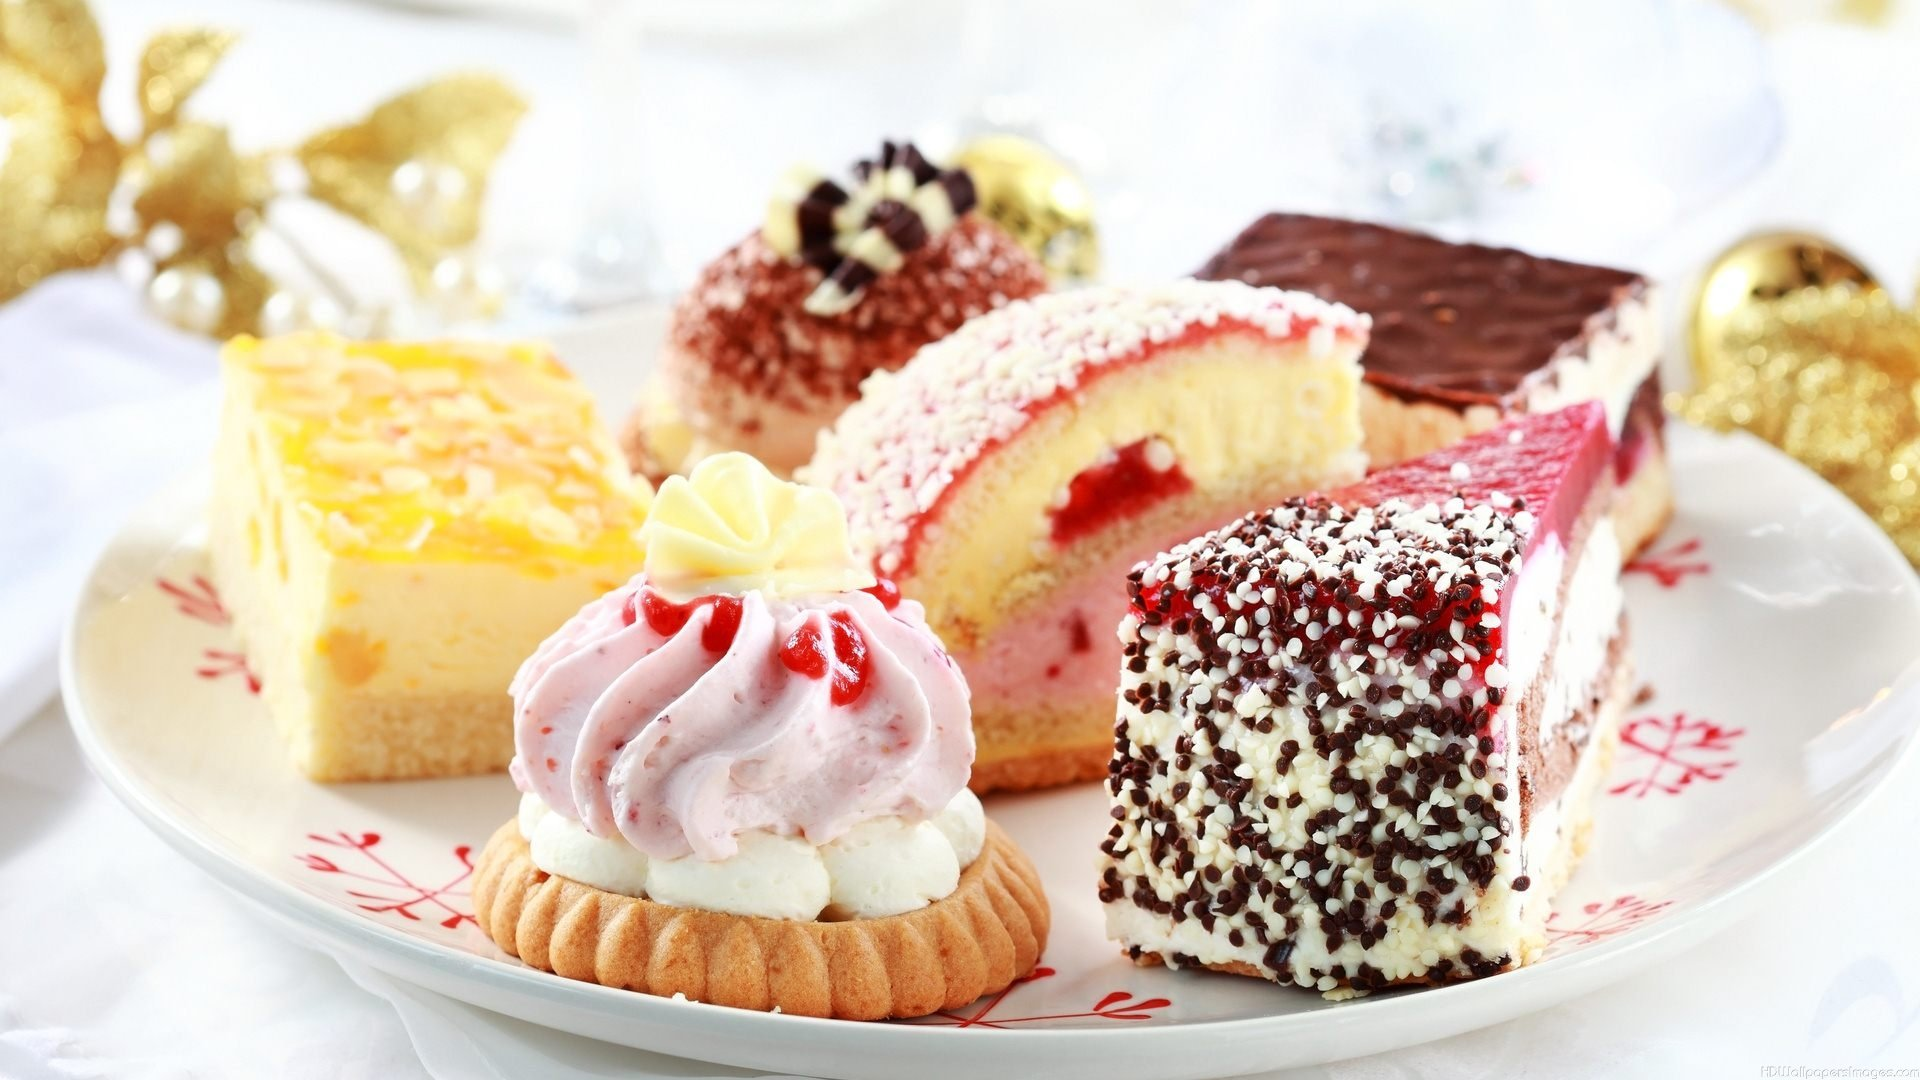 Delicious Pastries Images